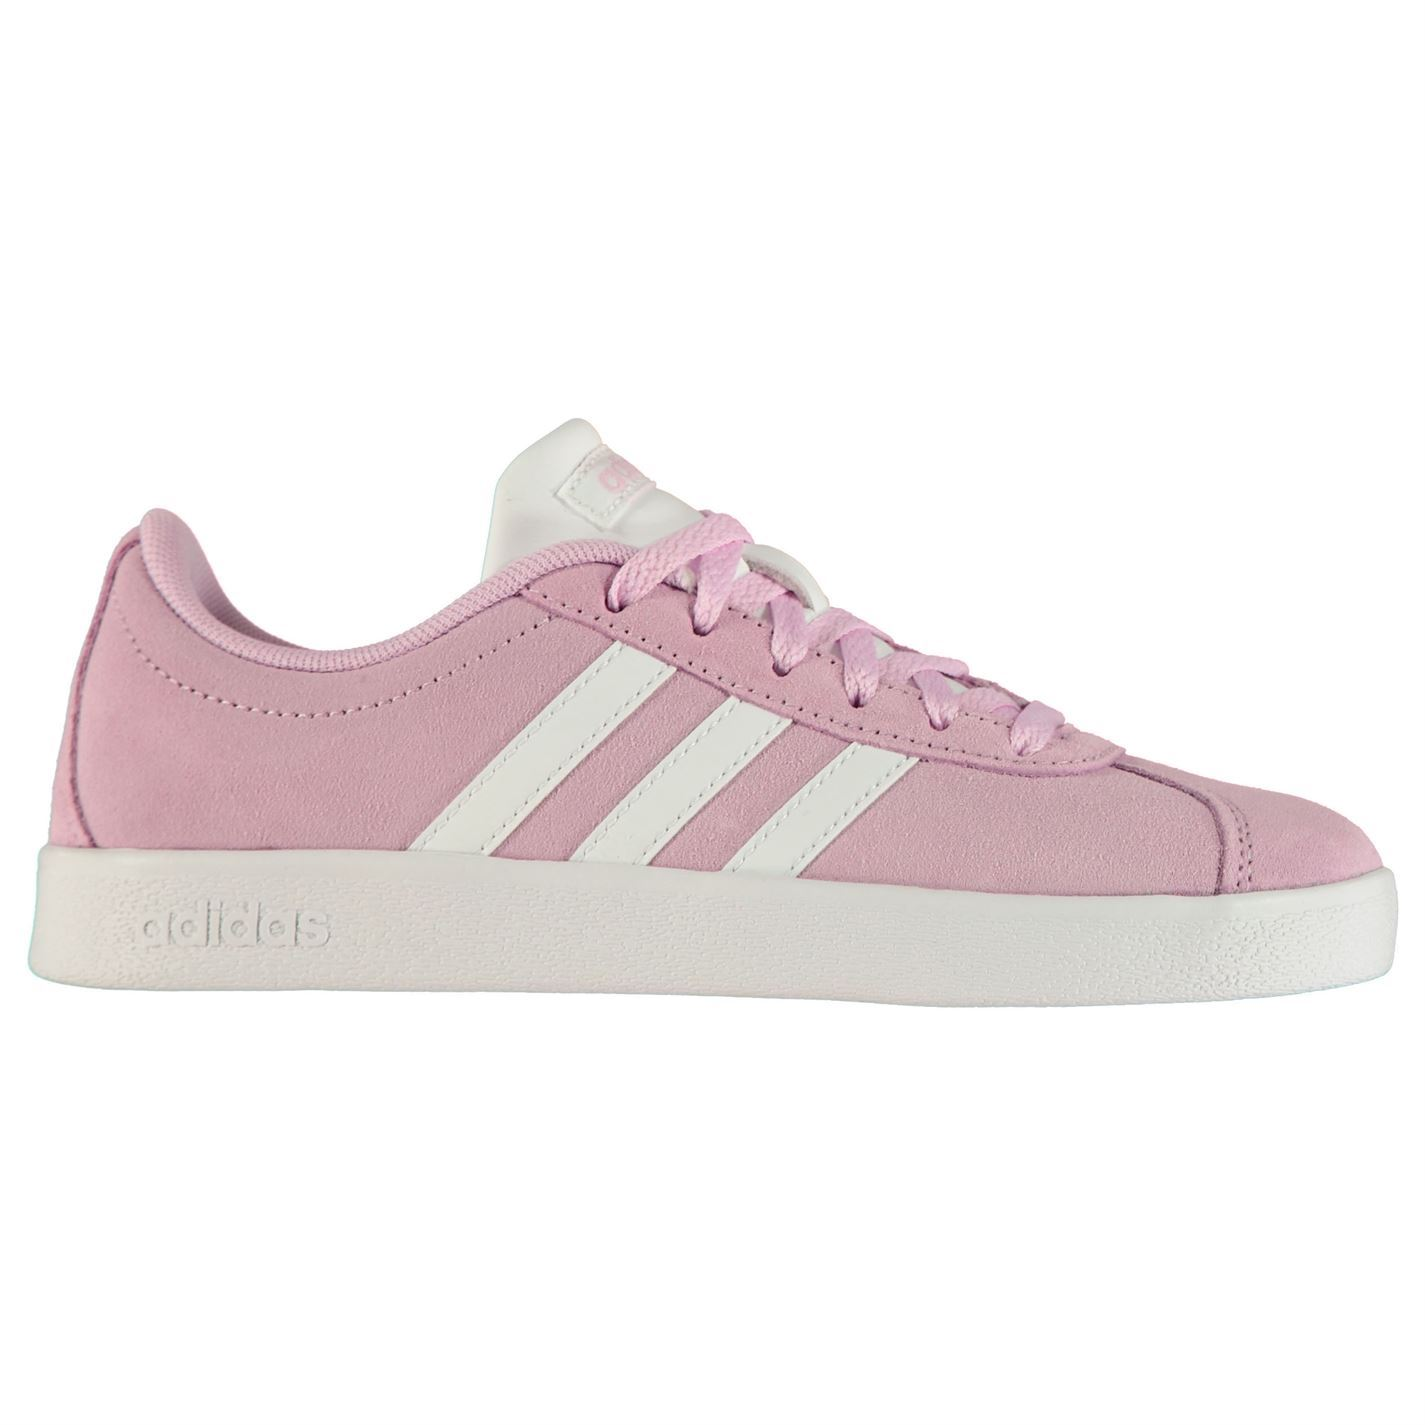 b83142318a6 adidas VL Court Suede Shoes Child Girls Trainers Footwear